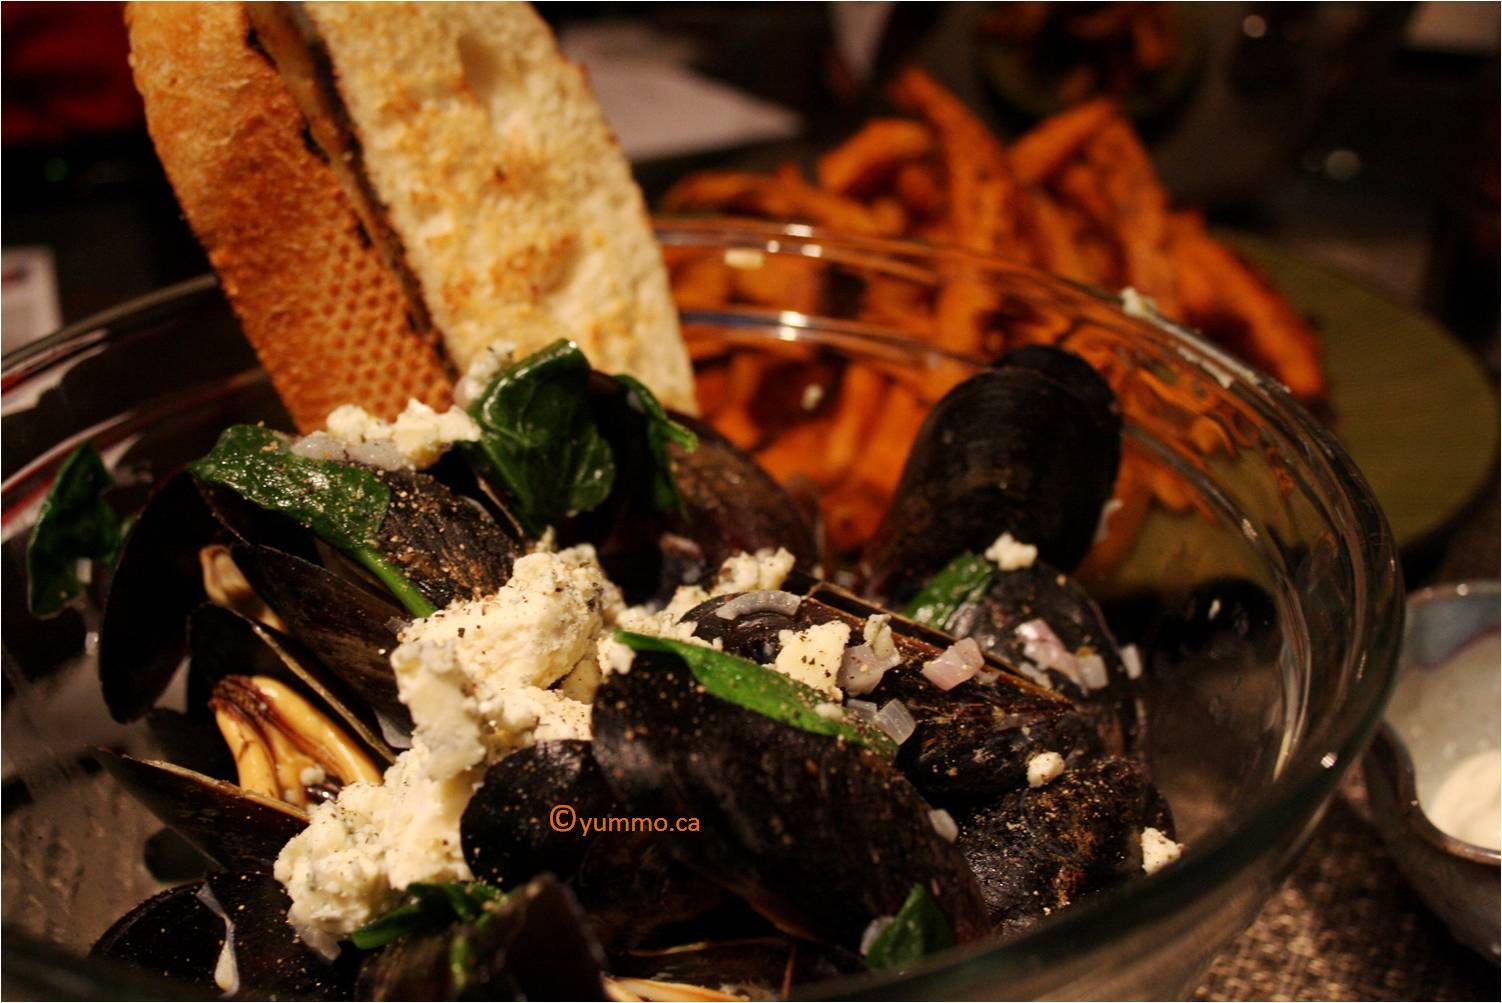 Mussels with Blue Cheese - to die for!